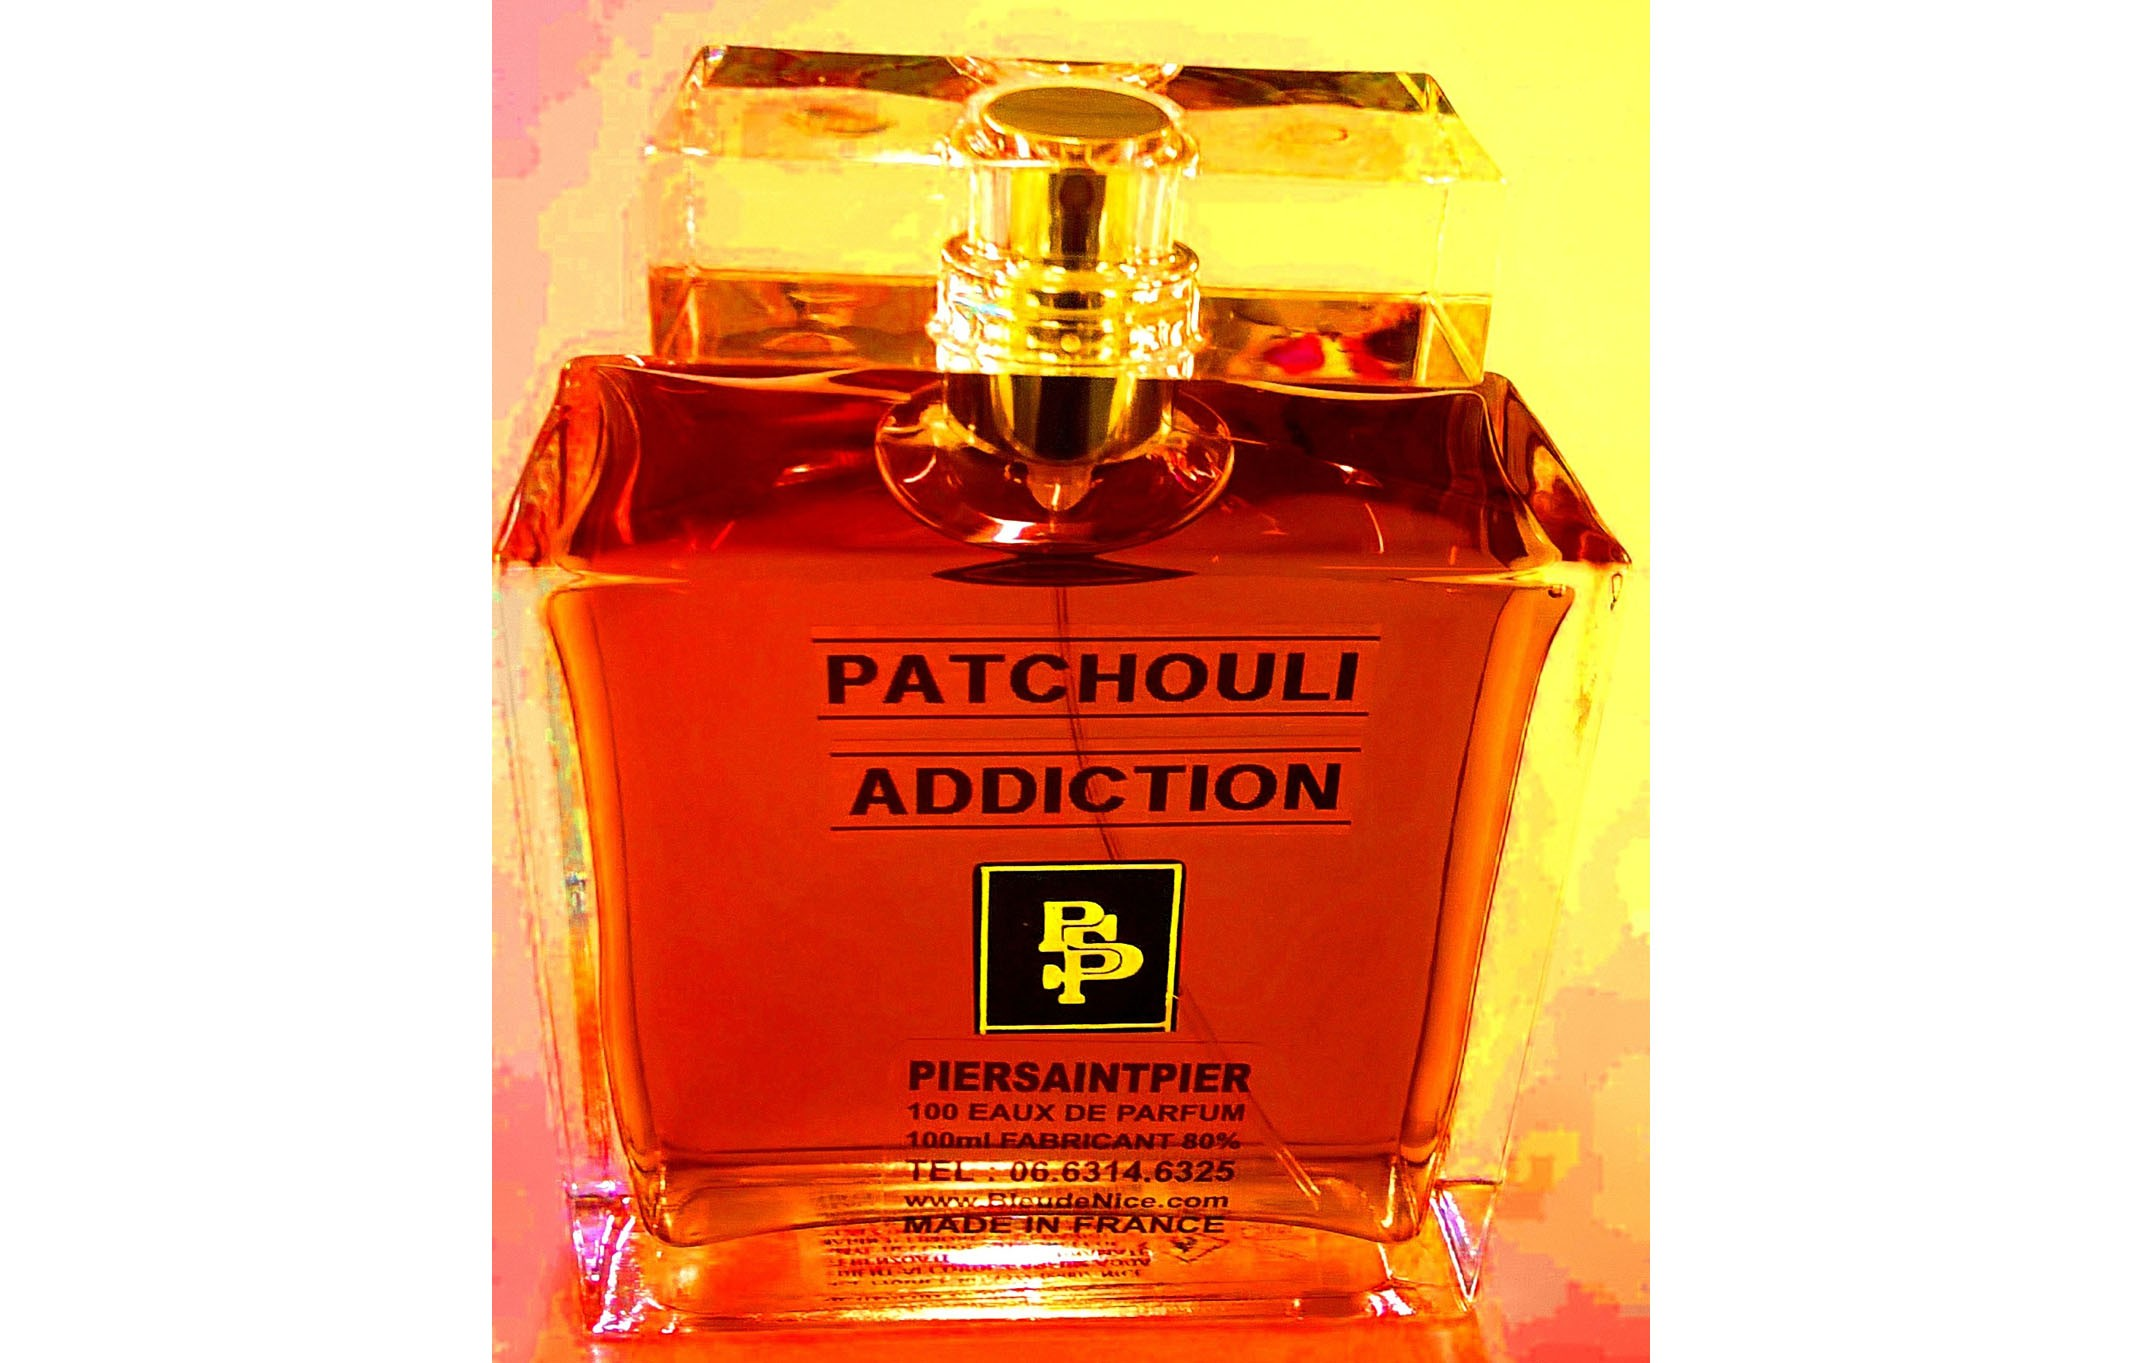 Patchouli Addiction - Flacon Luxe 100ml sans Boite